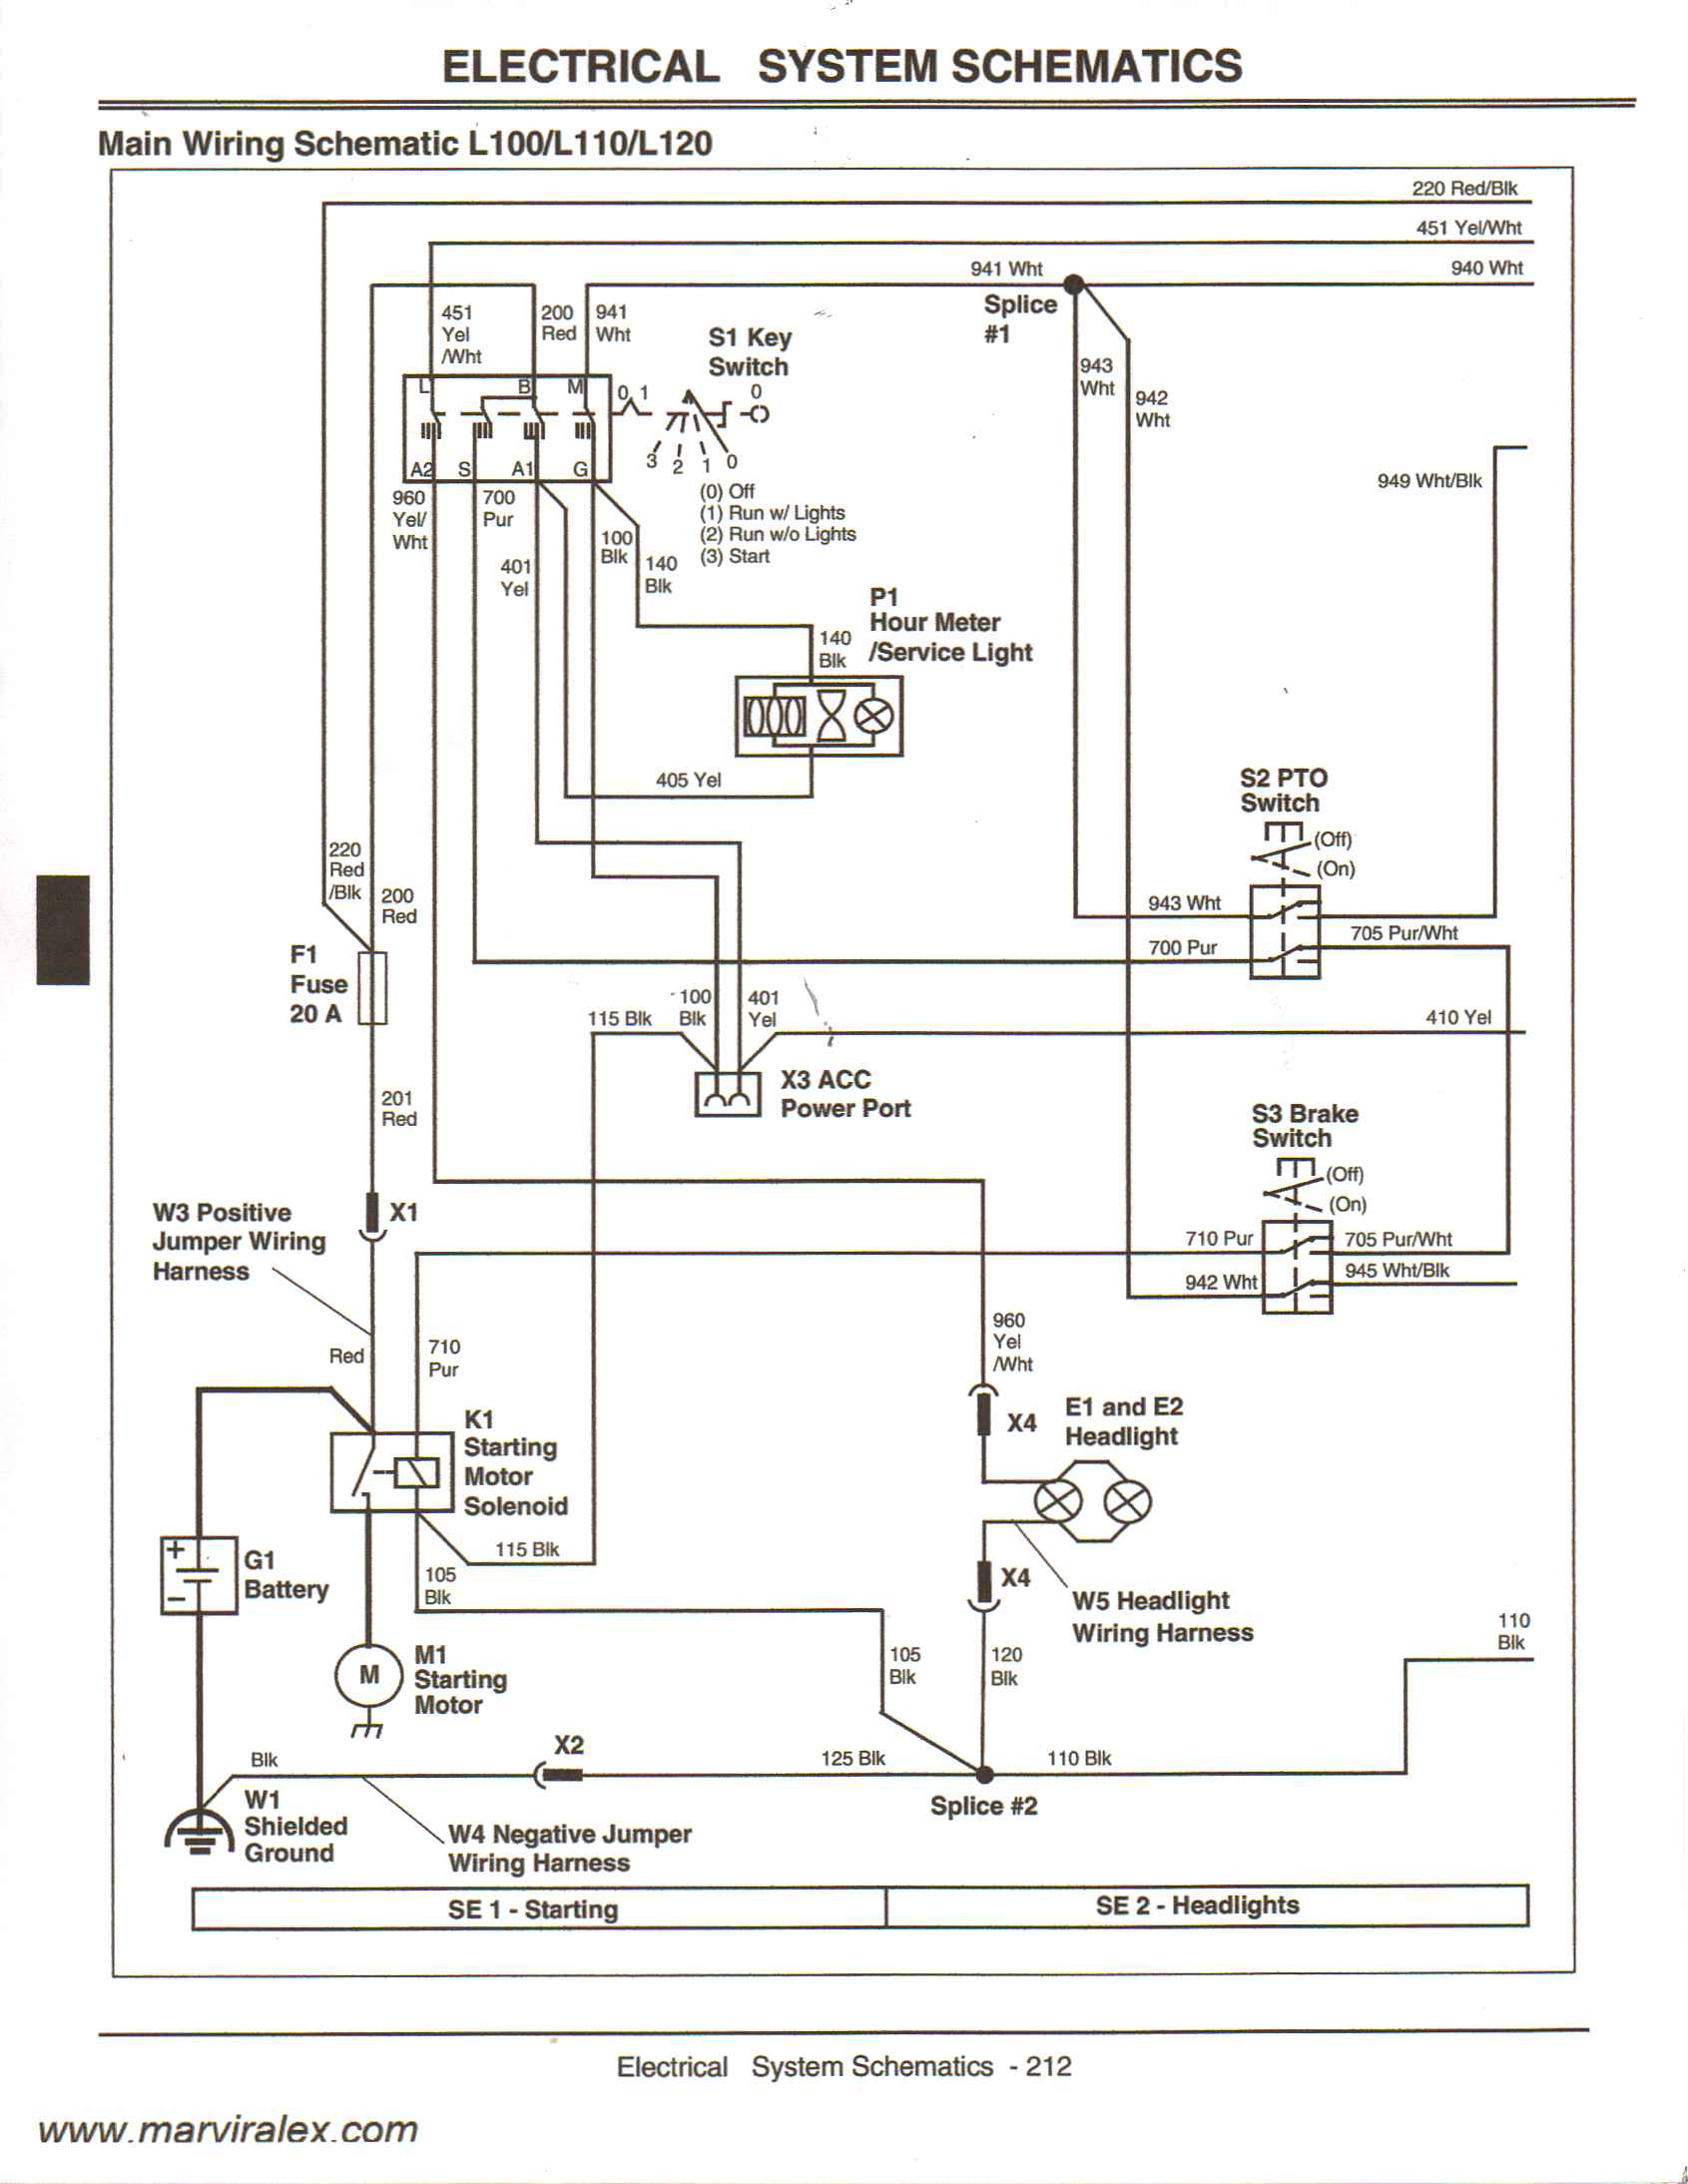 wiring diagram for 317 john deere